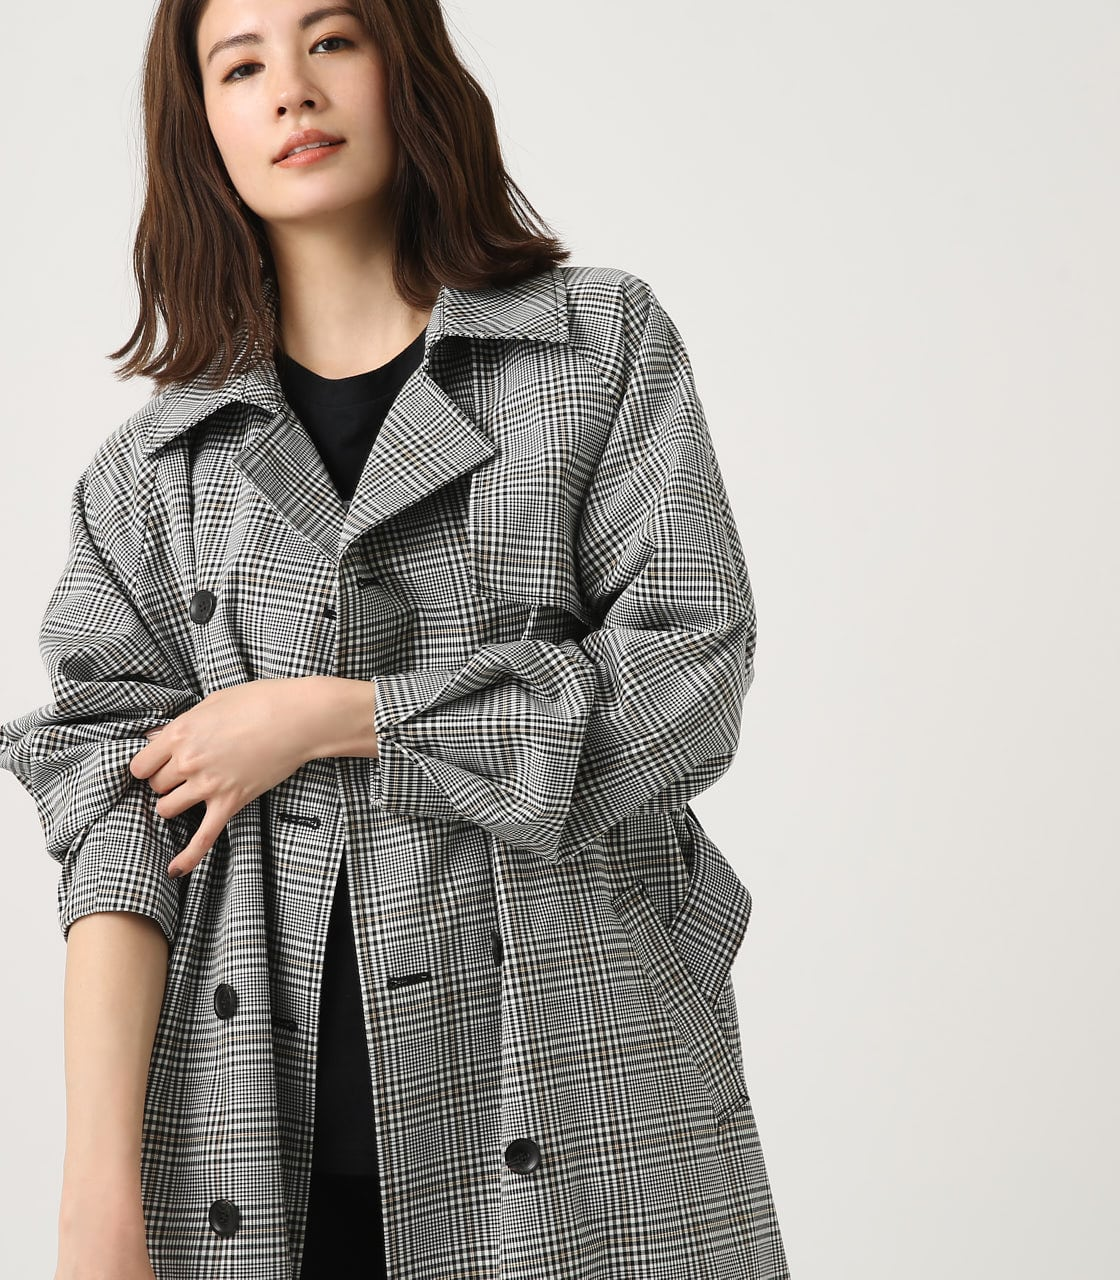 【AZUL BY MOUSSY】VOLUME SLEEVE LONG TRENCH COAT 詳細画像 柄BLK 4